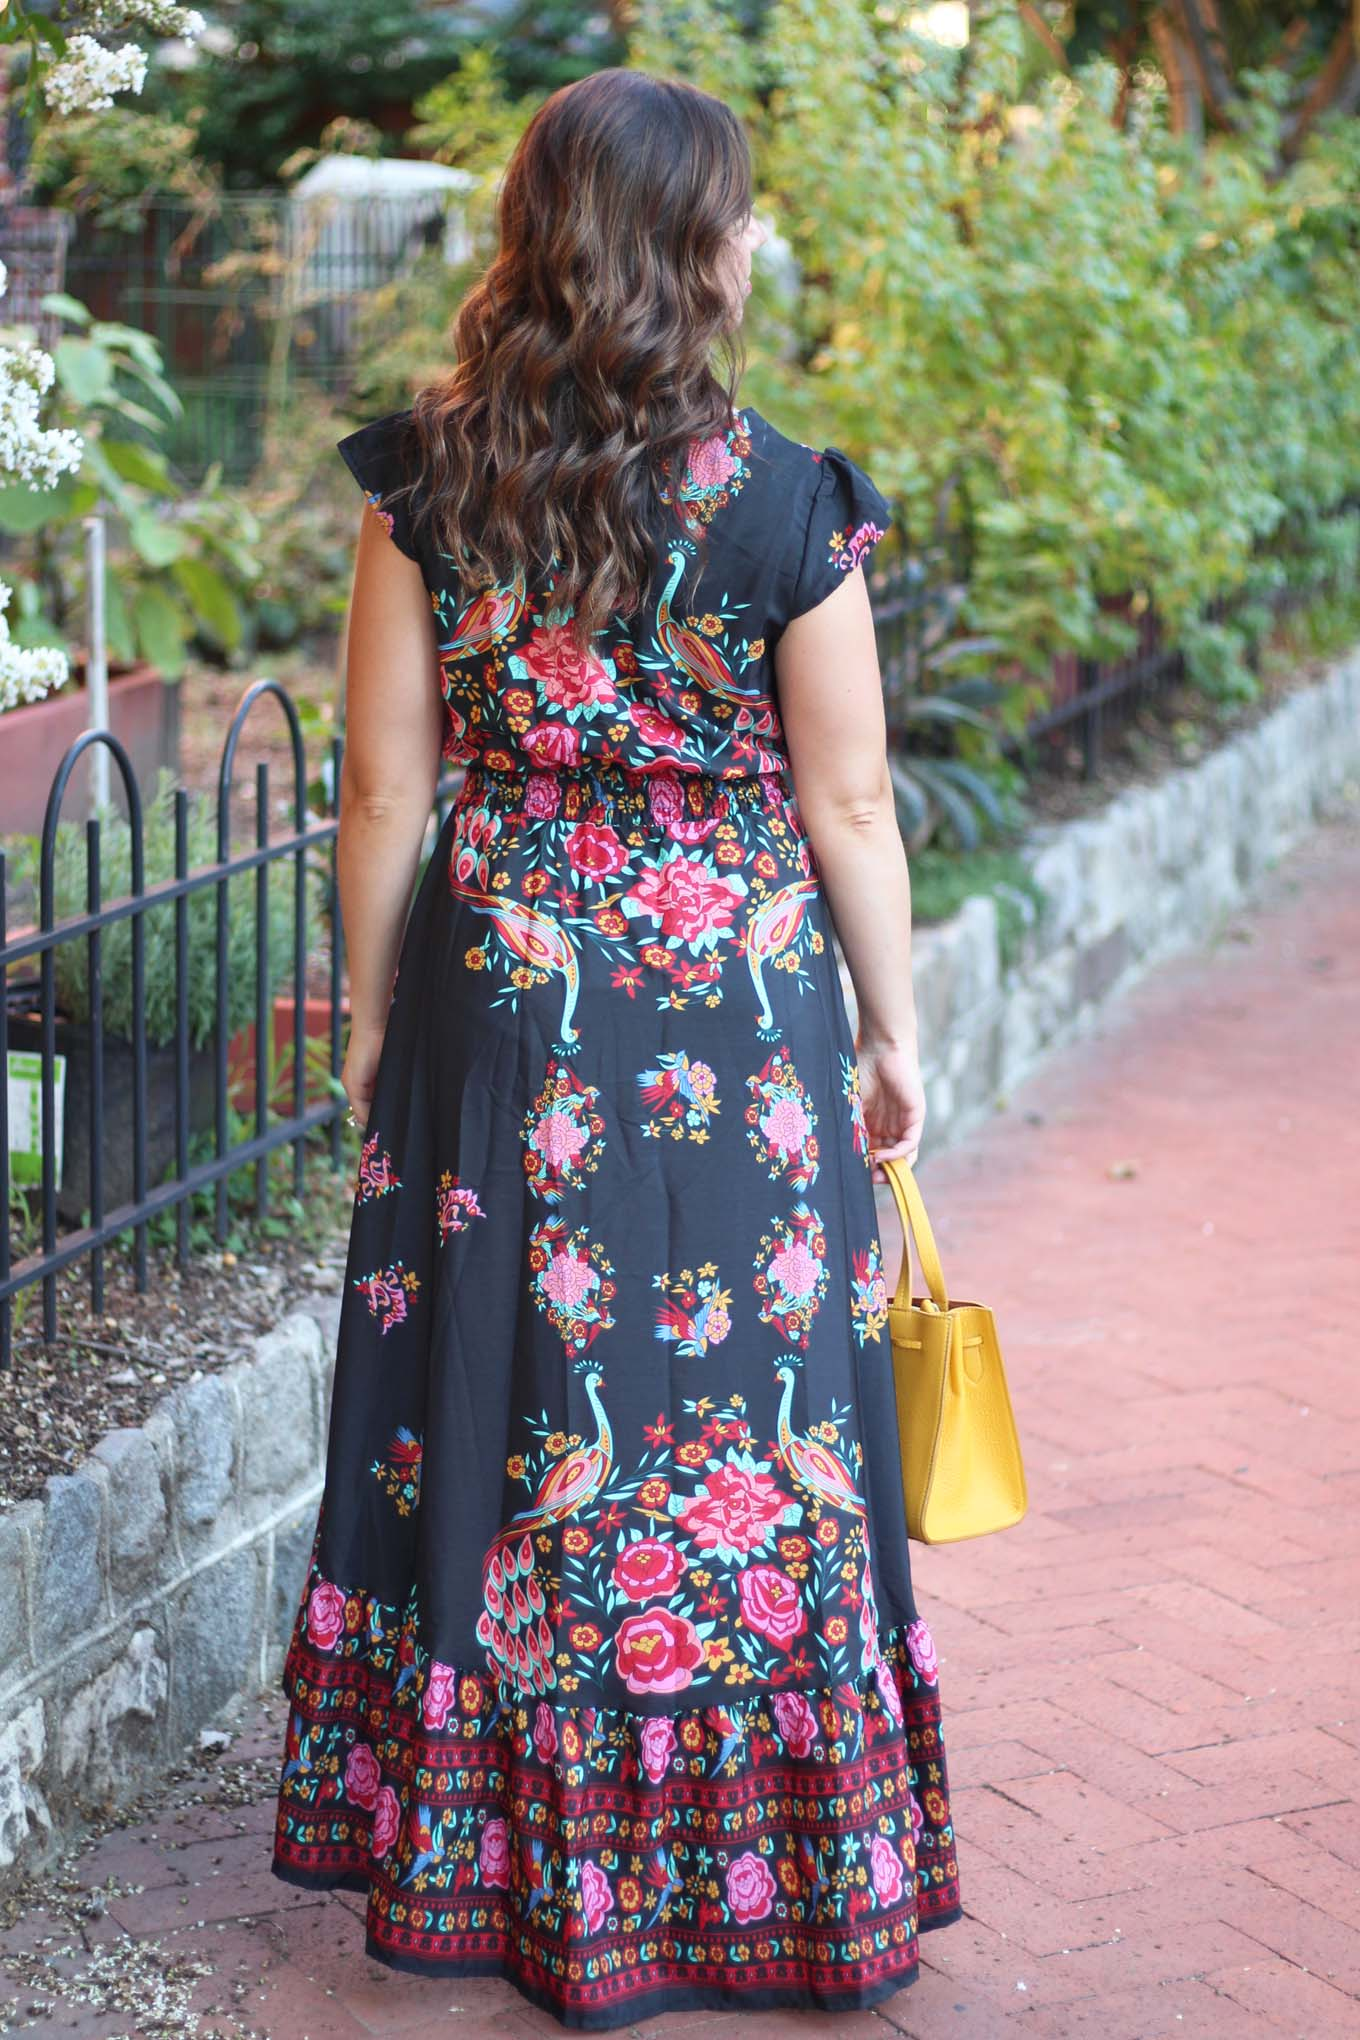 Lifestyle blogger Roxanne of Glass of Glam wearing a navy blue floral high low dress, Kate Spade bag, and Baublebar Earrings